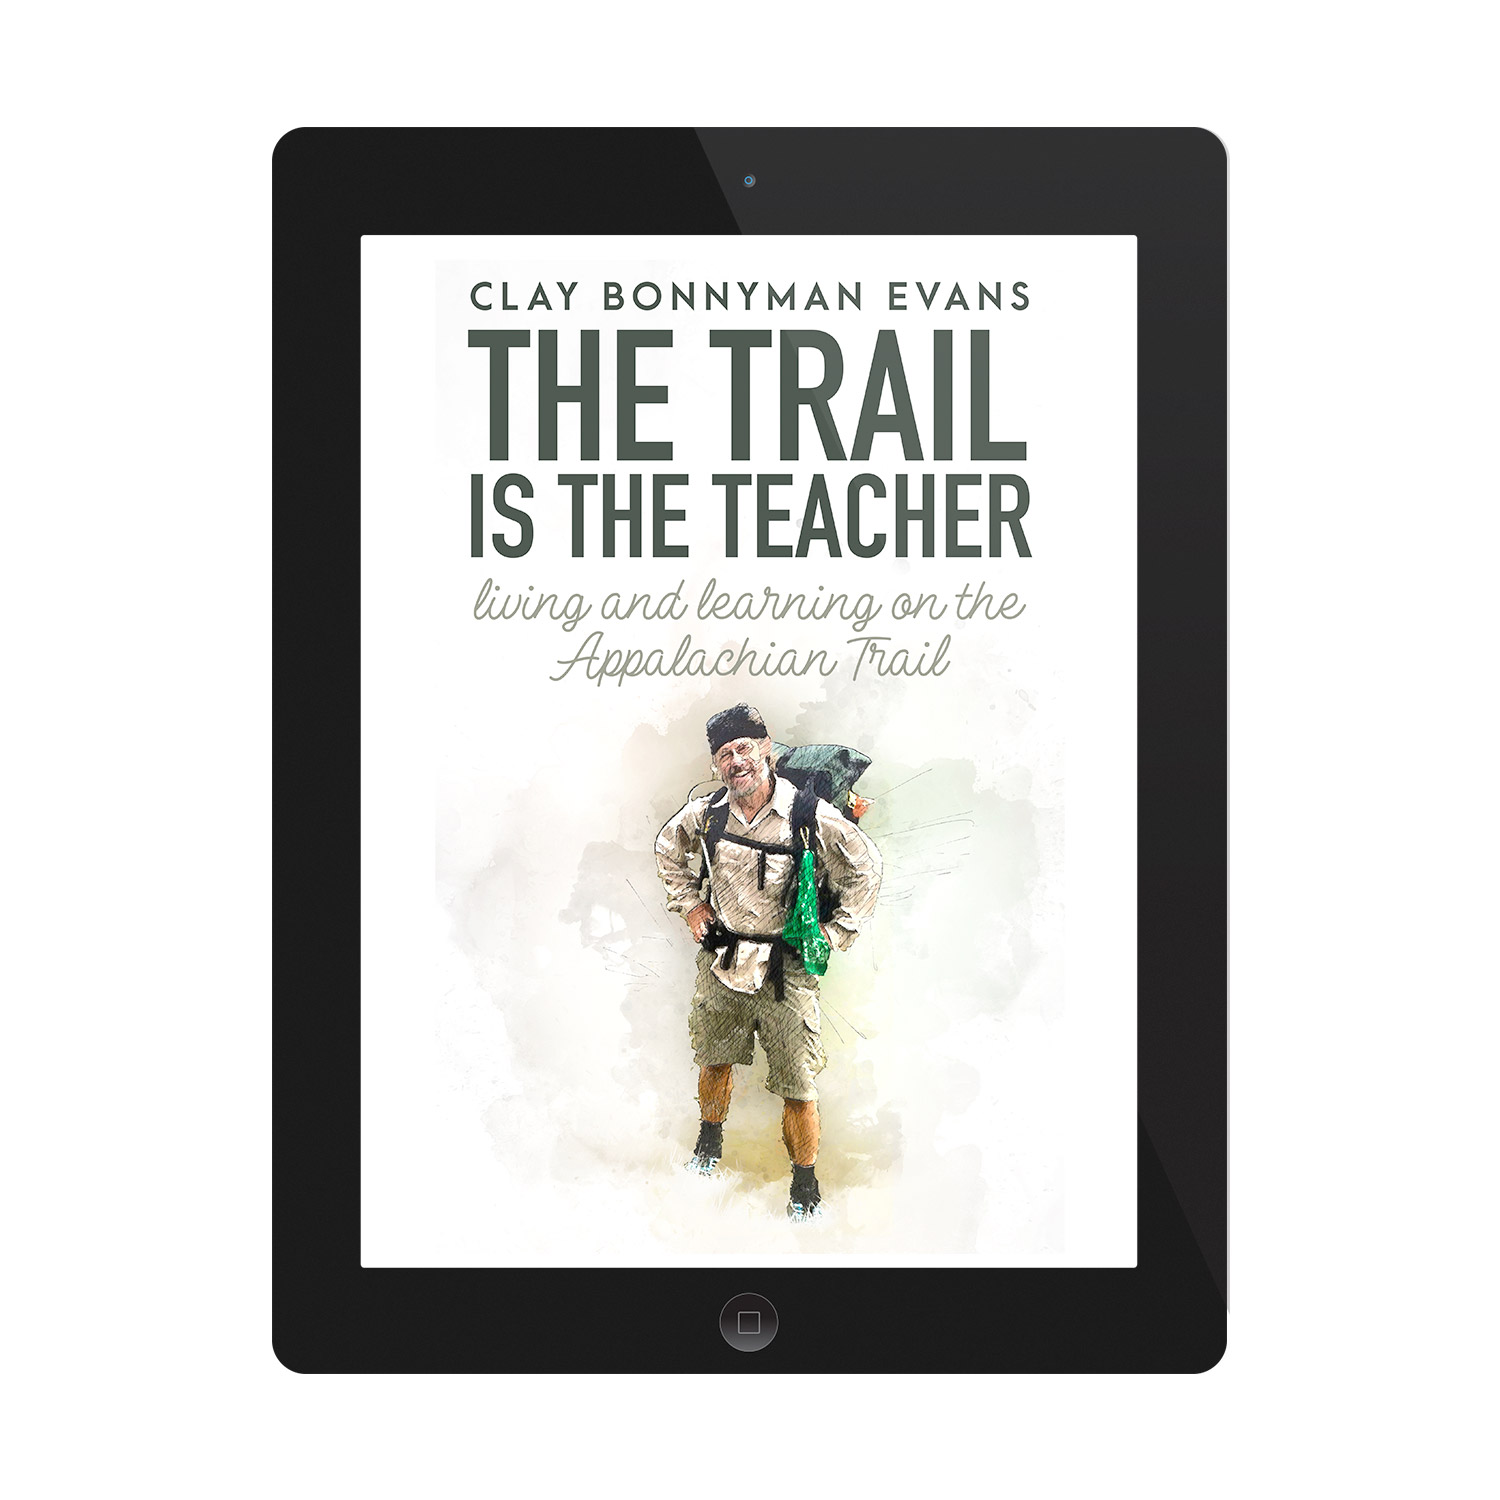 'The Trail Is The Teacher' is a joyous, life-affirming walking memoir, set of the Appalachian Trail. The author is Clay Bonnyman Evans. The book cover design and interior formatting are by Mark Thomas. To learn more about what Mark could do for your book, please visit coverness.com.